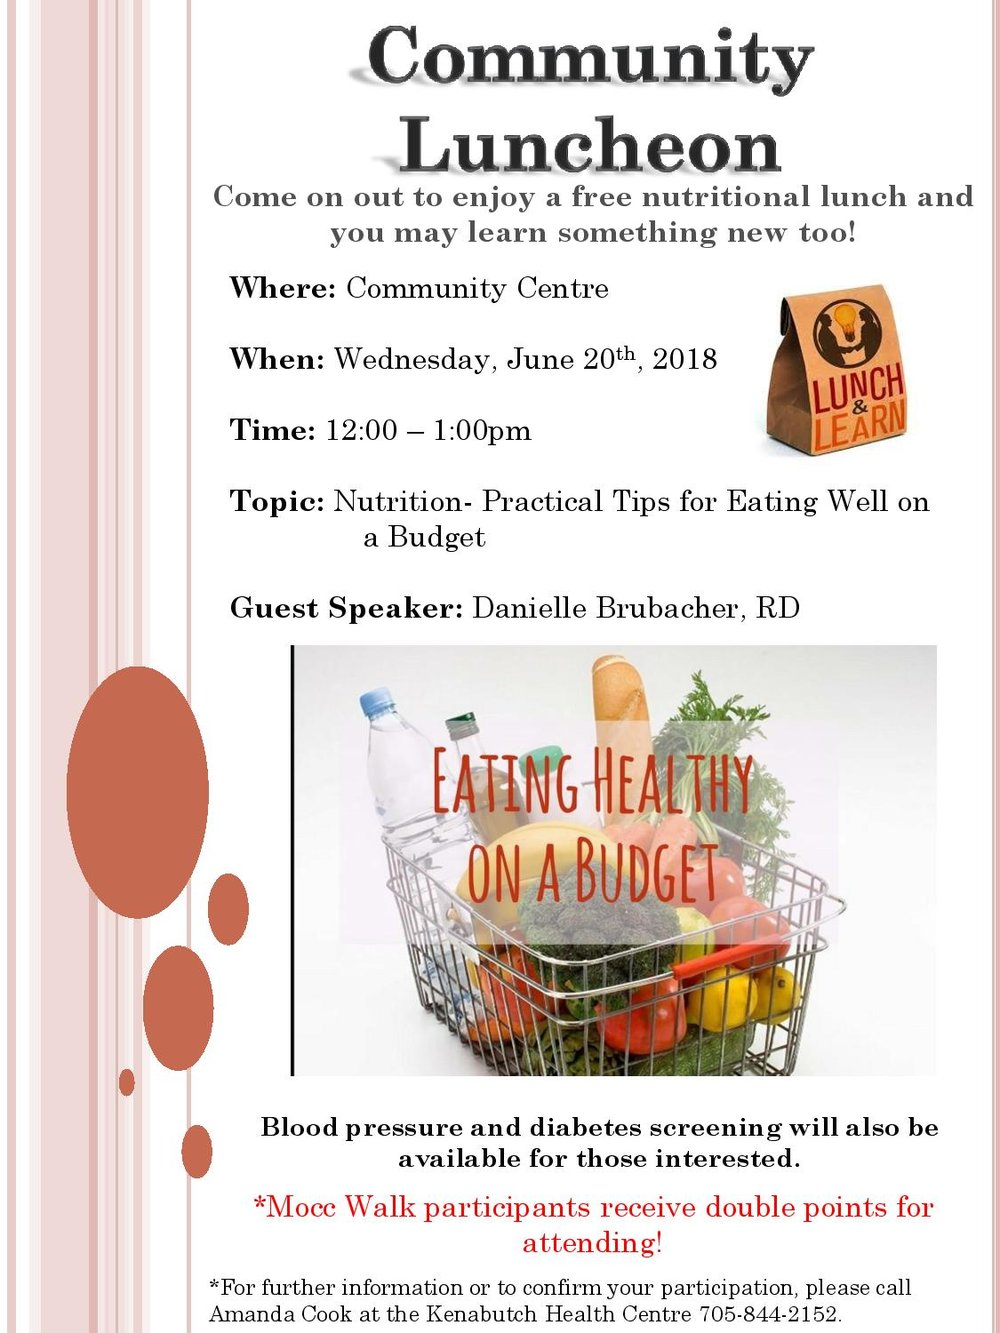 Community Luncheon Flyer- Nutrition 2018-page-001.jpg